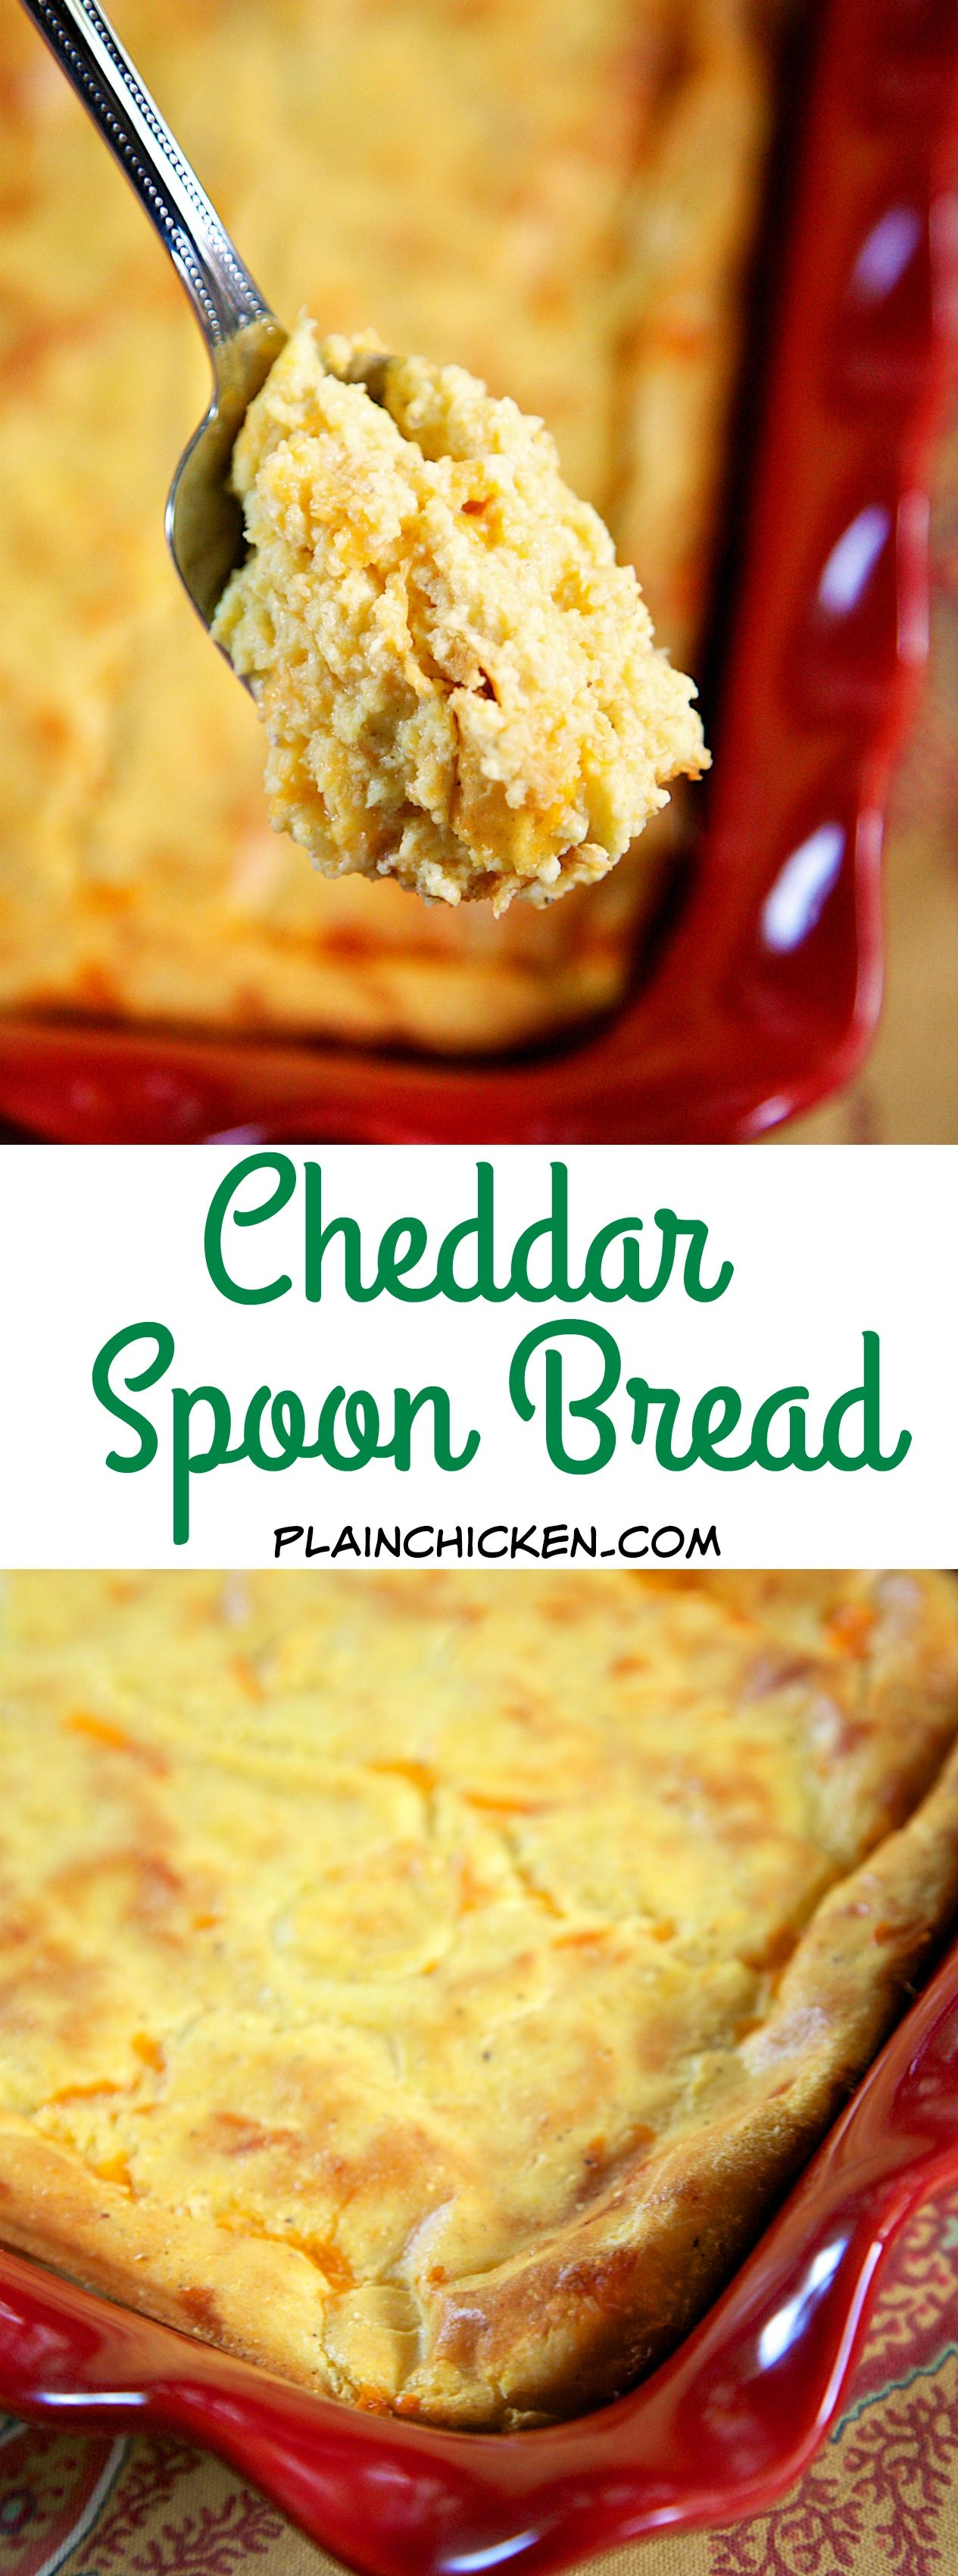 Photo of Cheddar Spoon Bread – Plain Chicken